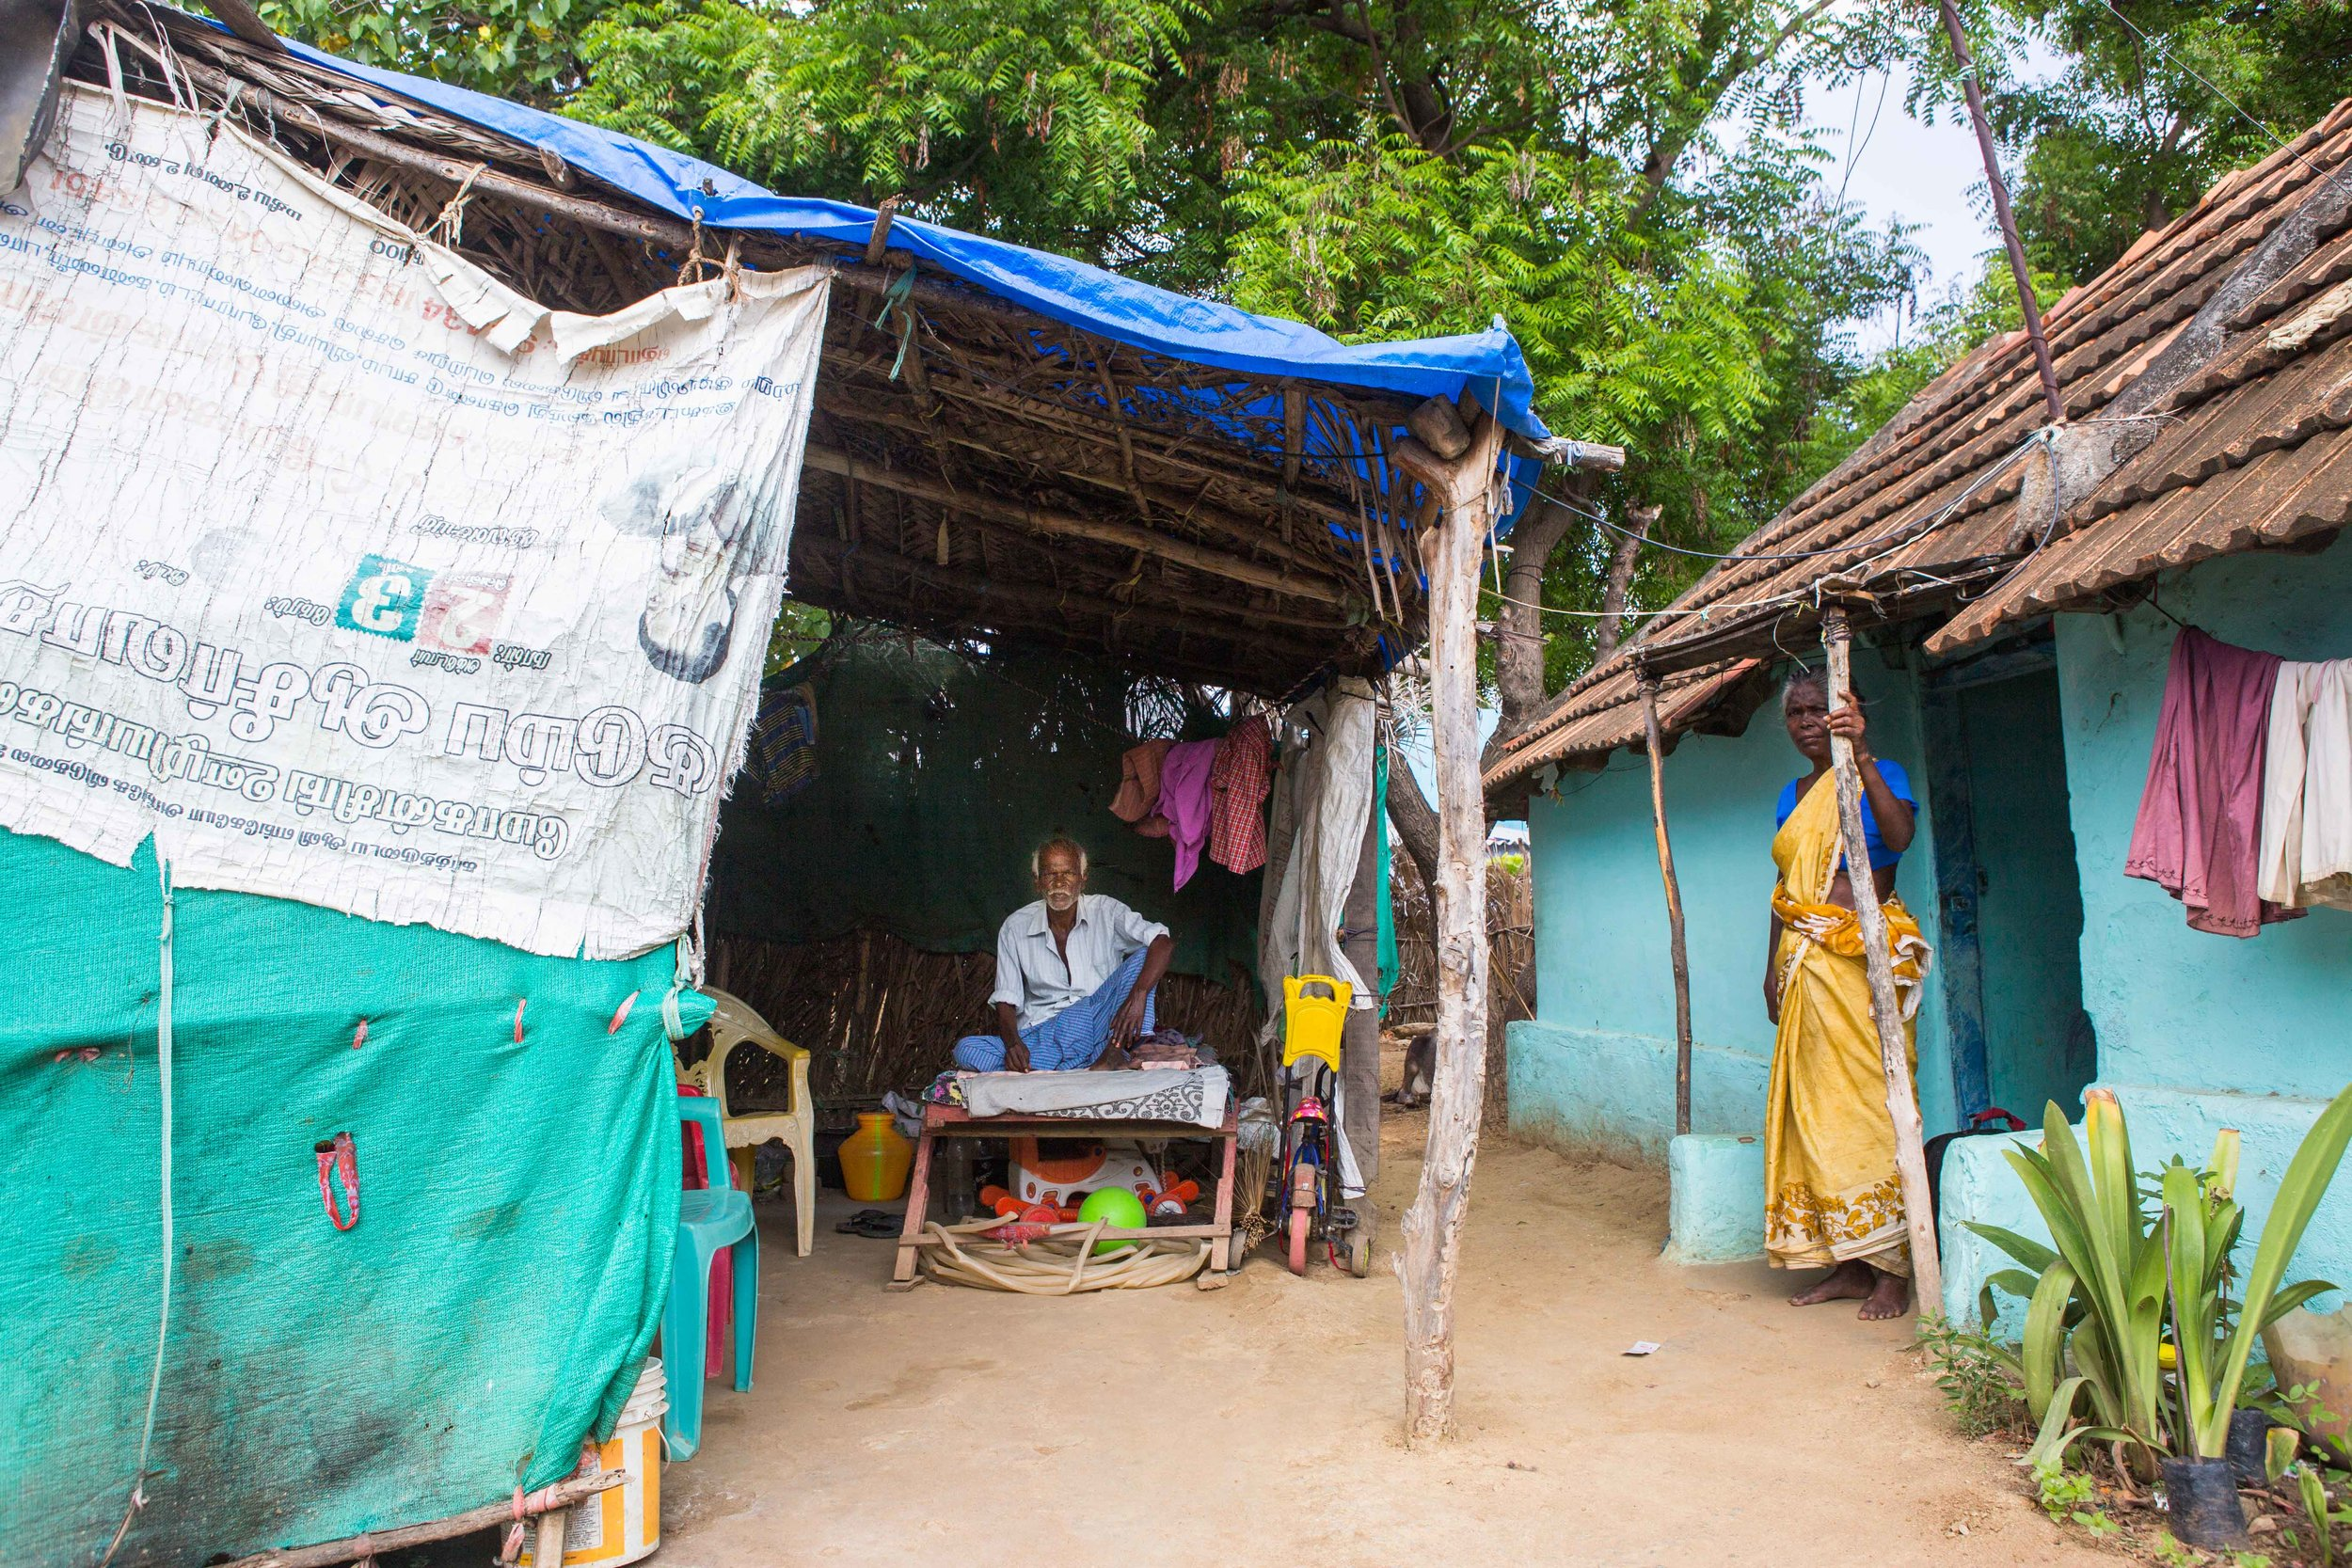 Living with vision loss is unbearable for people who have no savings to fall back on. Poverty and lack of proper support makes it a struggle for existence for many. At a village in Tirunelveli, Tamil Nadu